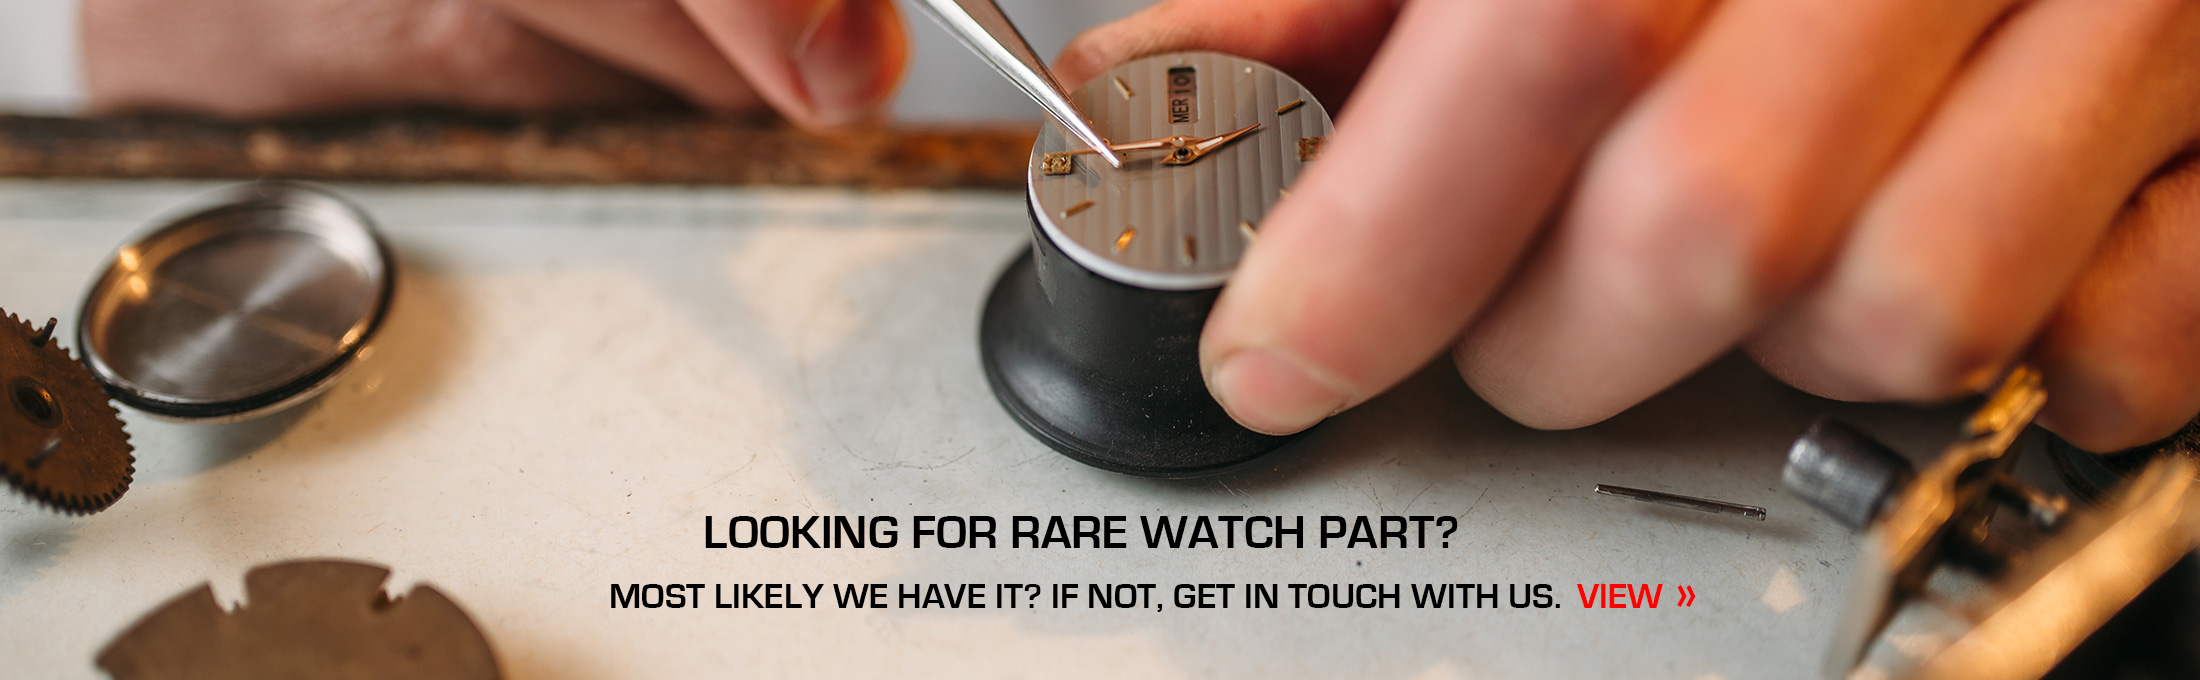 Looking for rare watch part